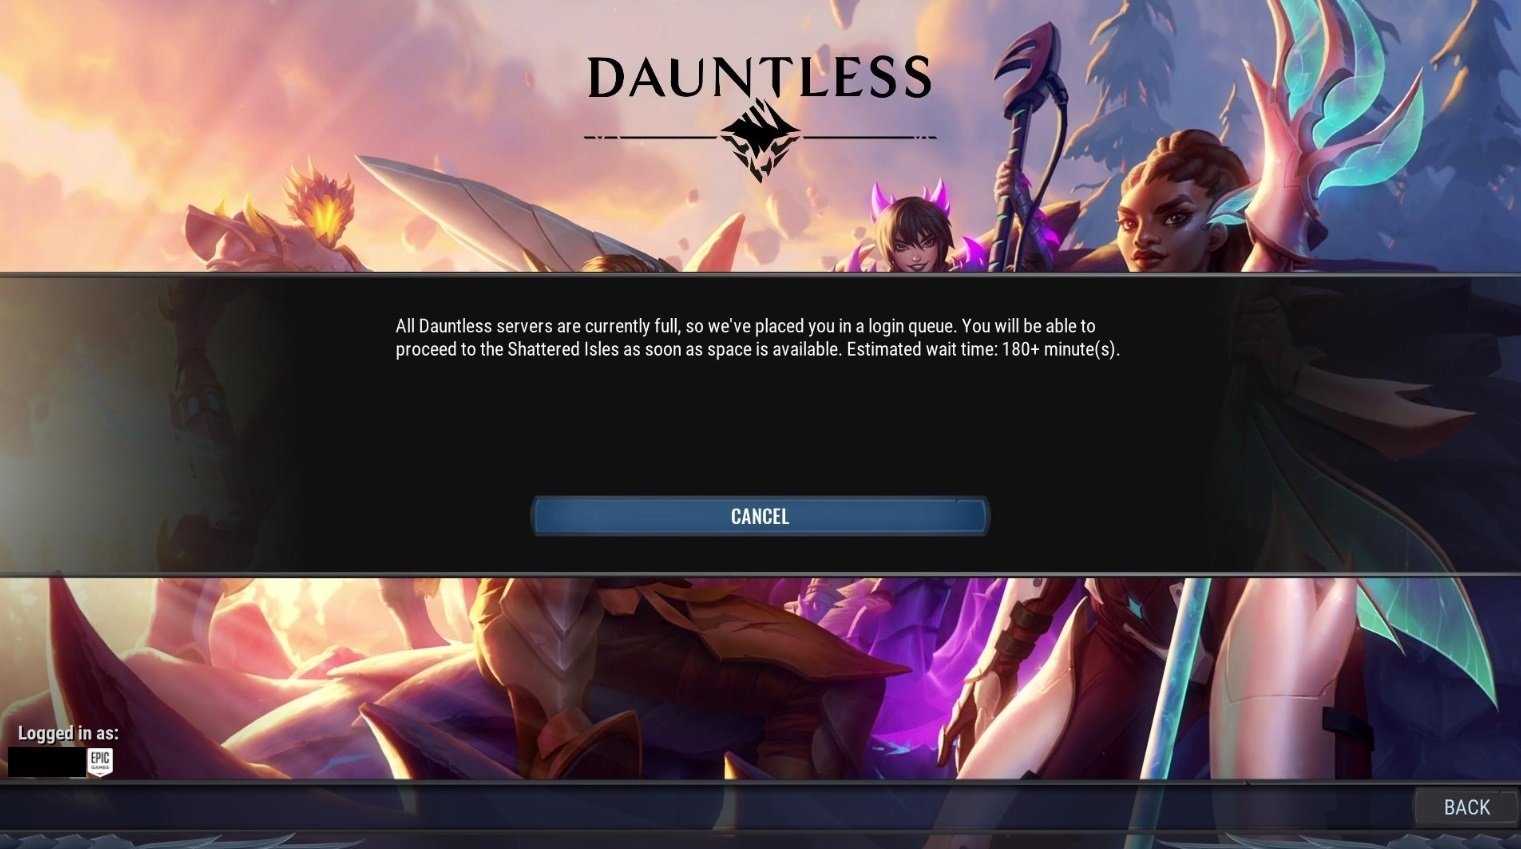 Dauntless is so popular that players are stuck waiting in